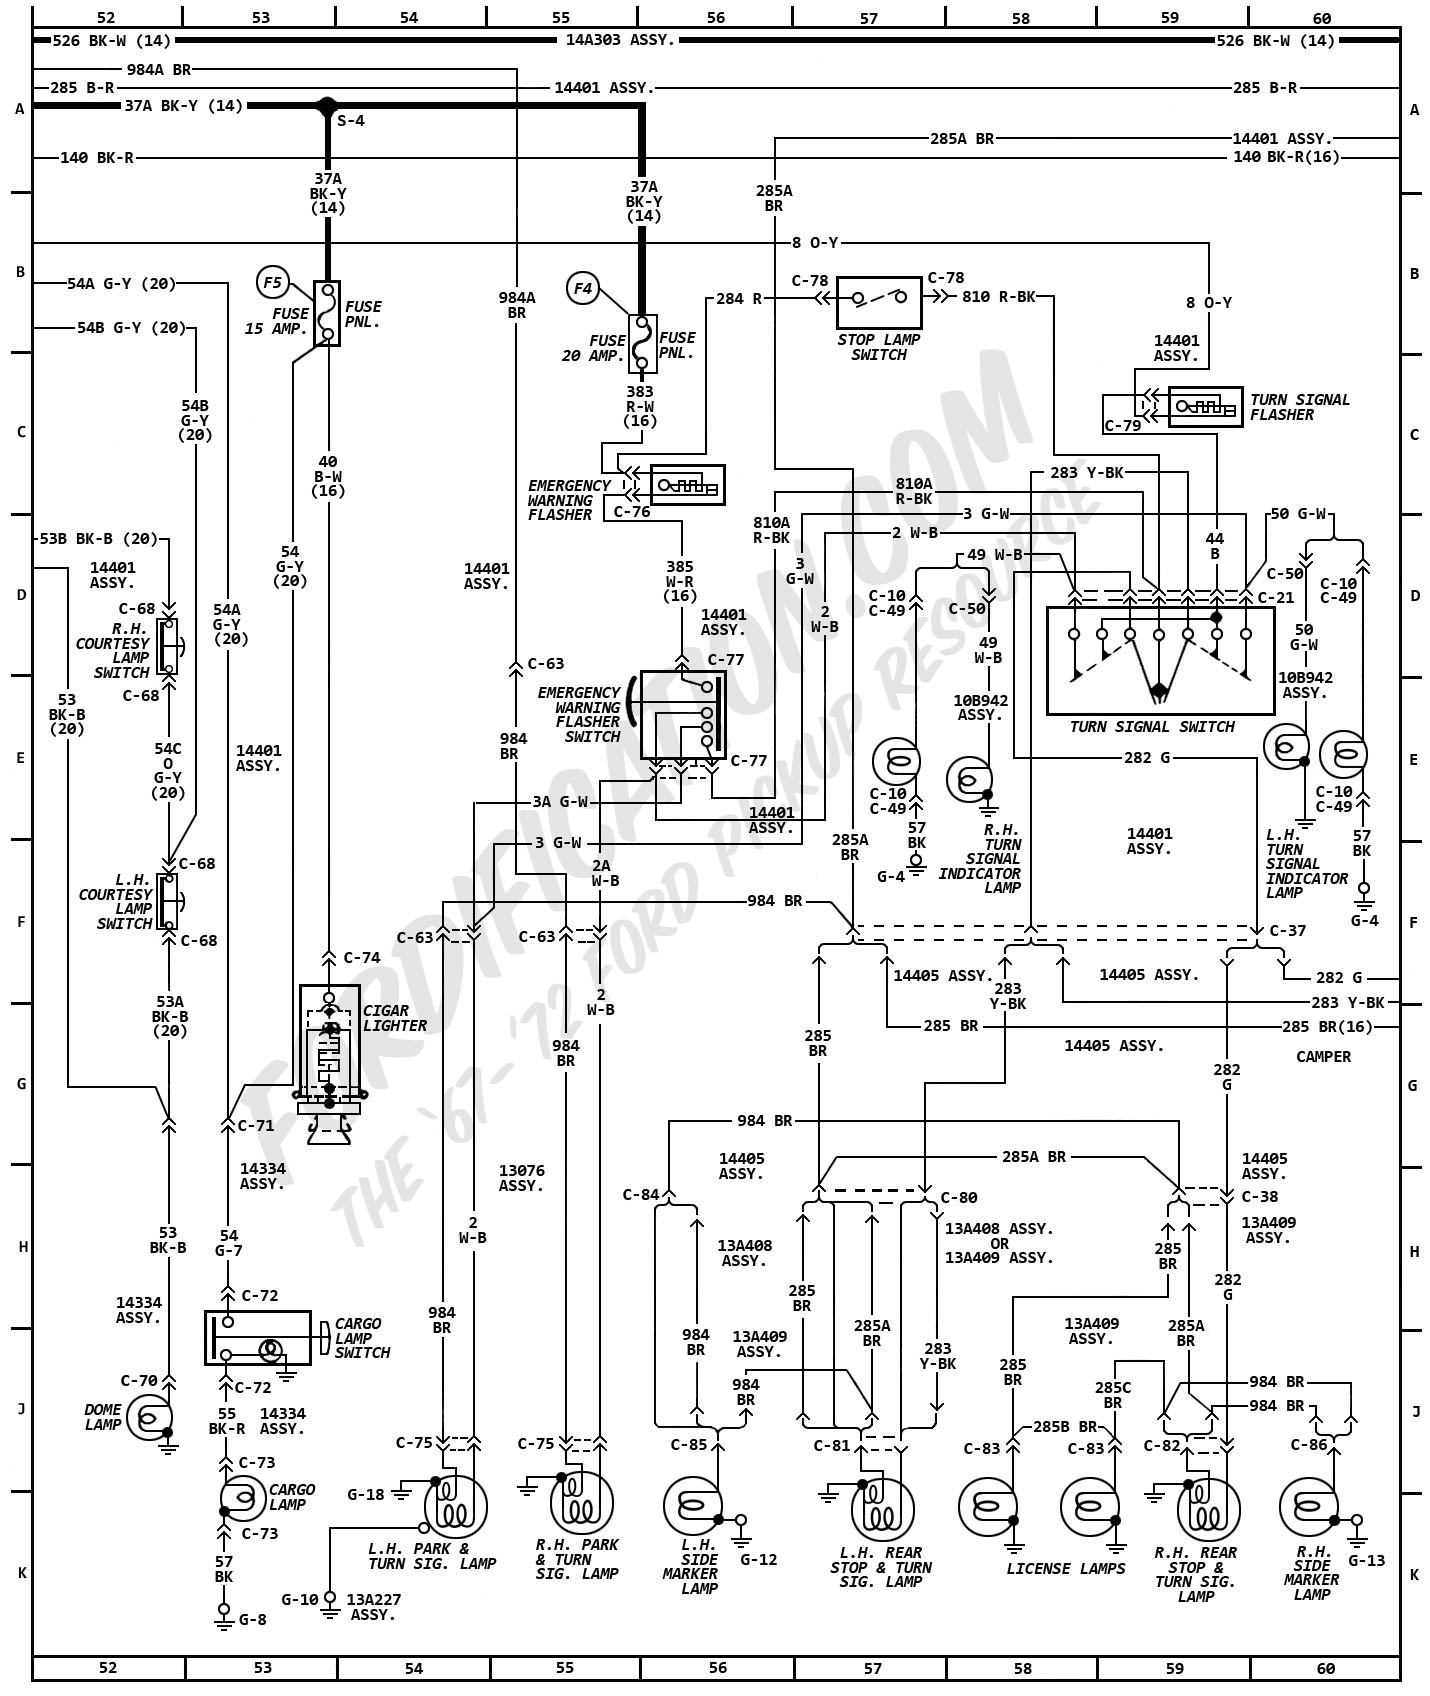 1972 ford truck wiring diagrams fordification com rh fordification com 1970 ford f100 ignition switch wiring diagram 1973 Ford Ignition Wiring Diagram